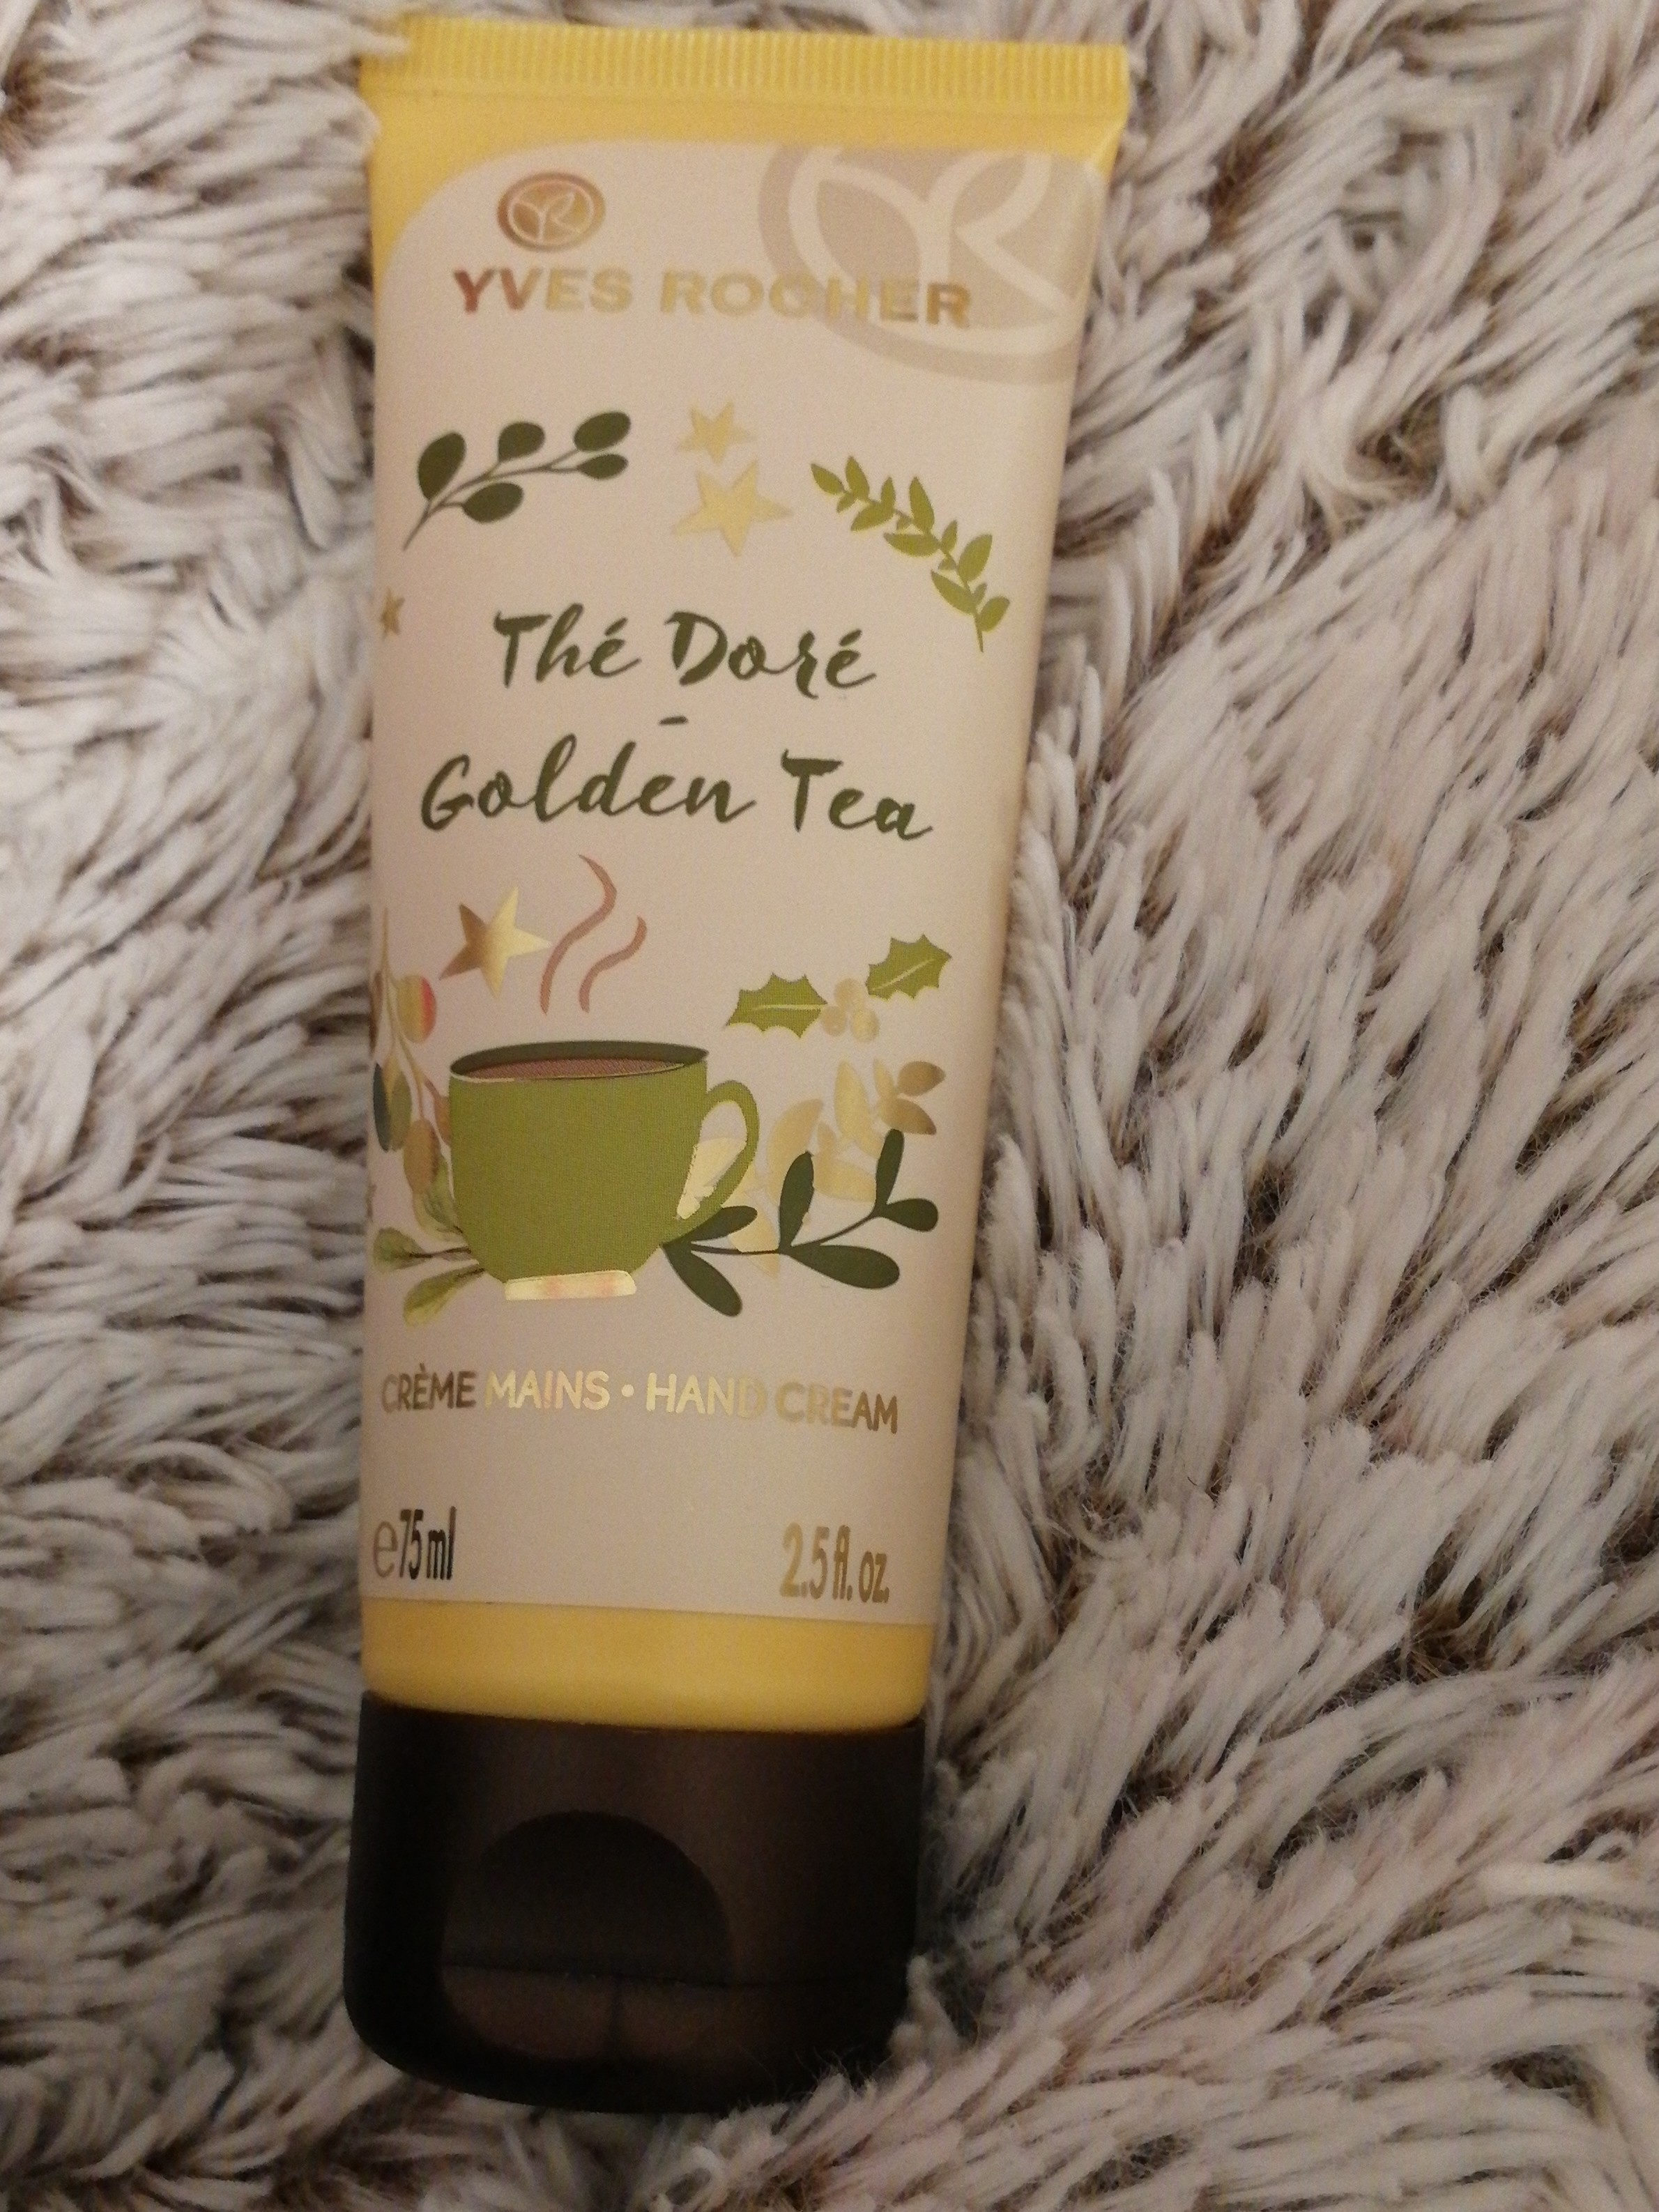 Thé Doré Golden Tea - Product